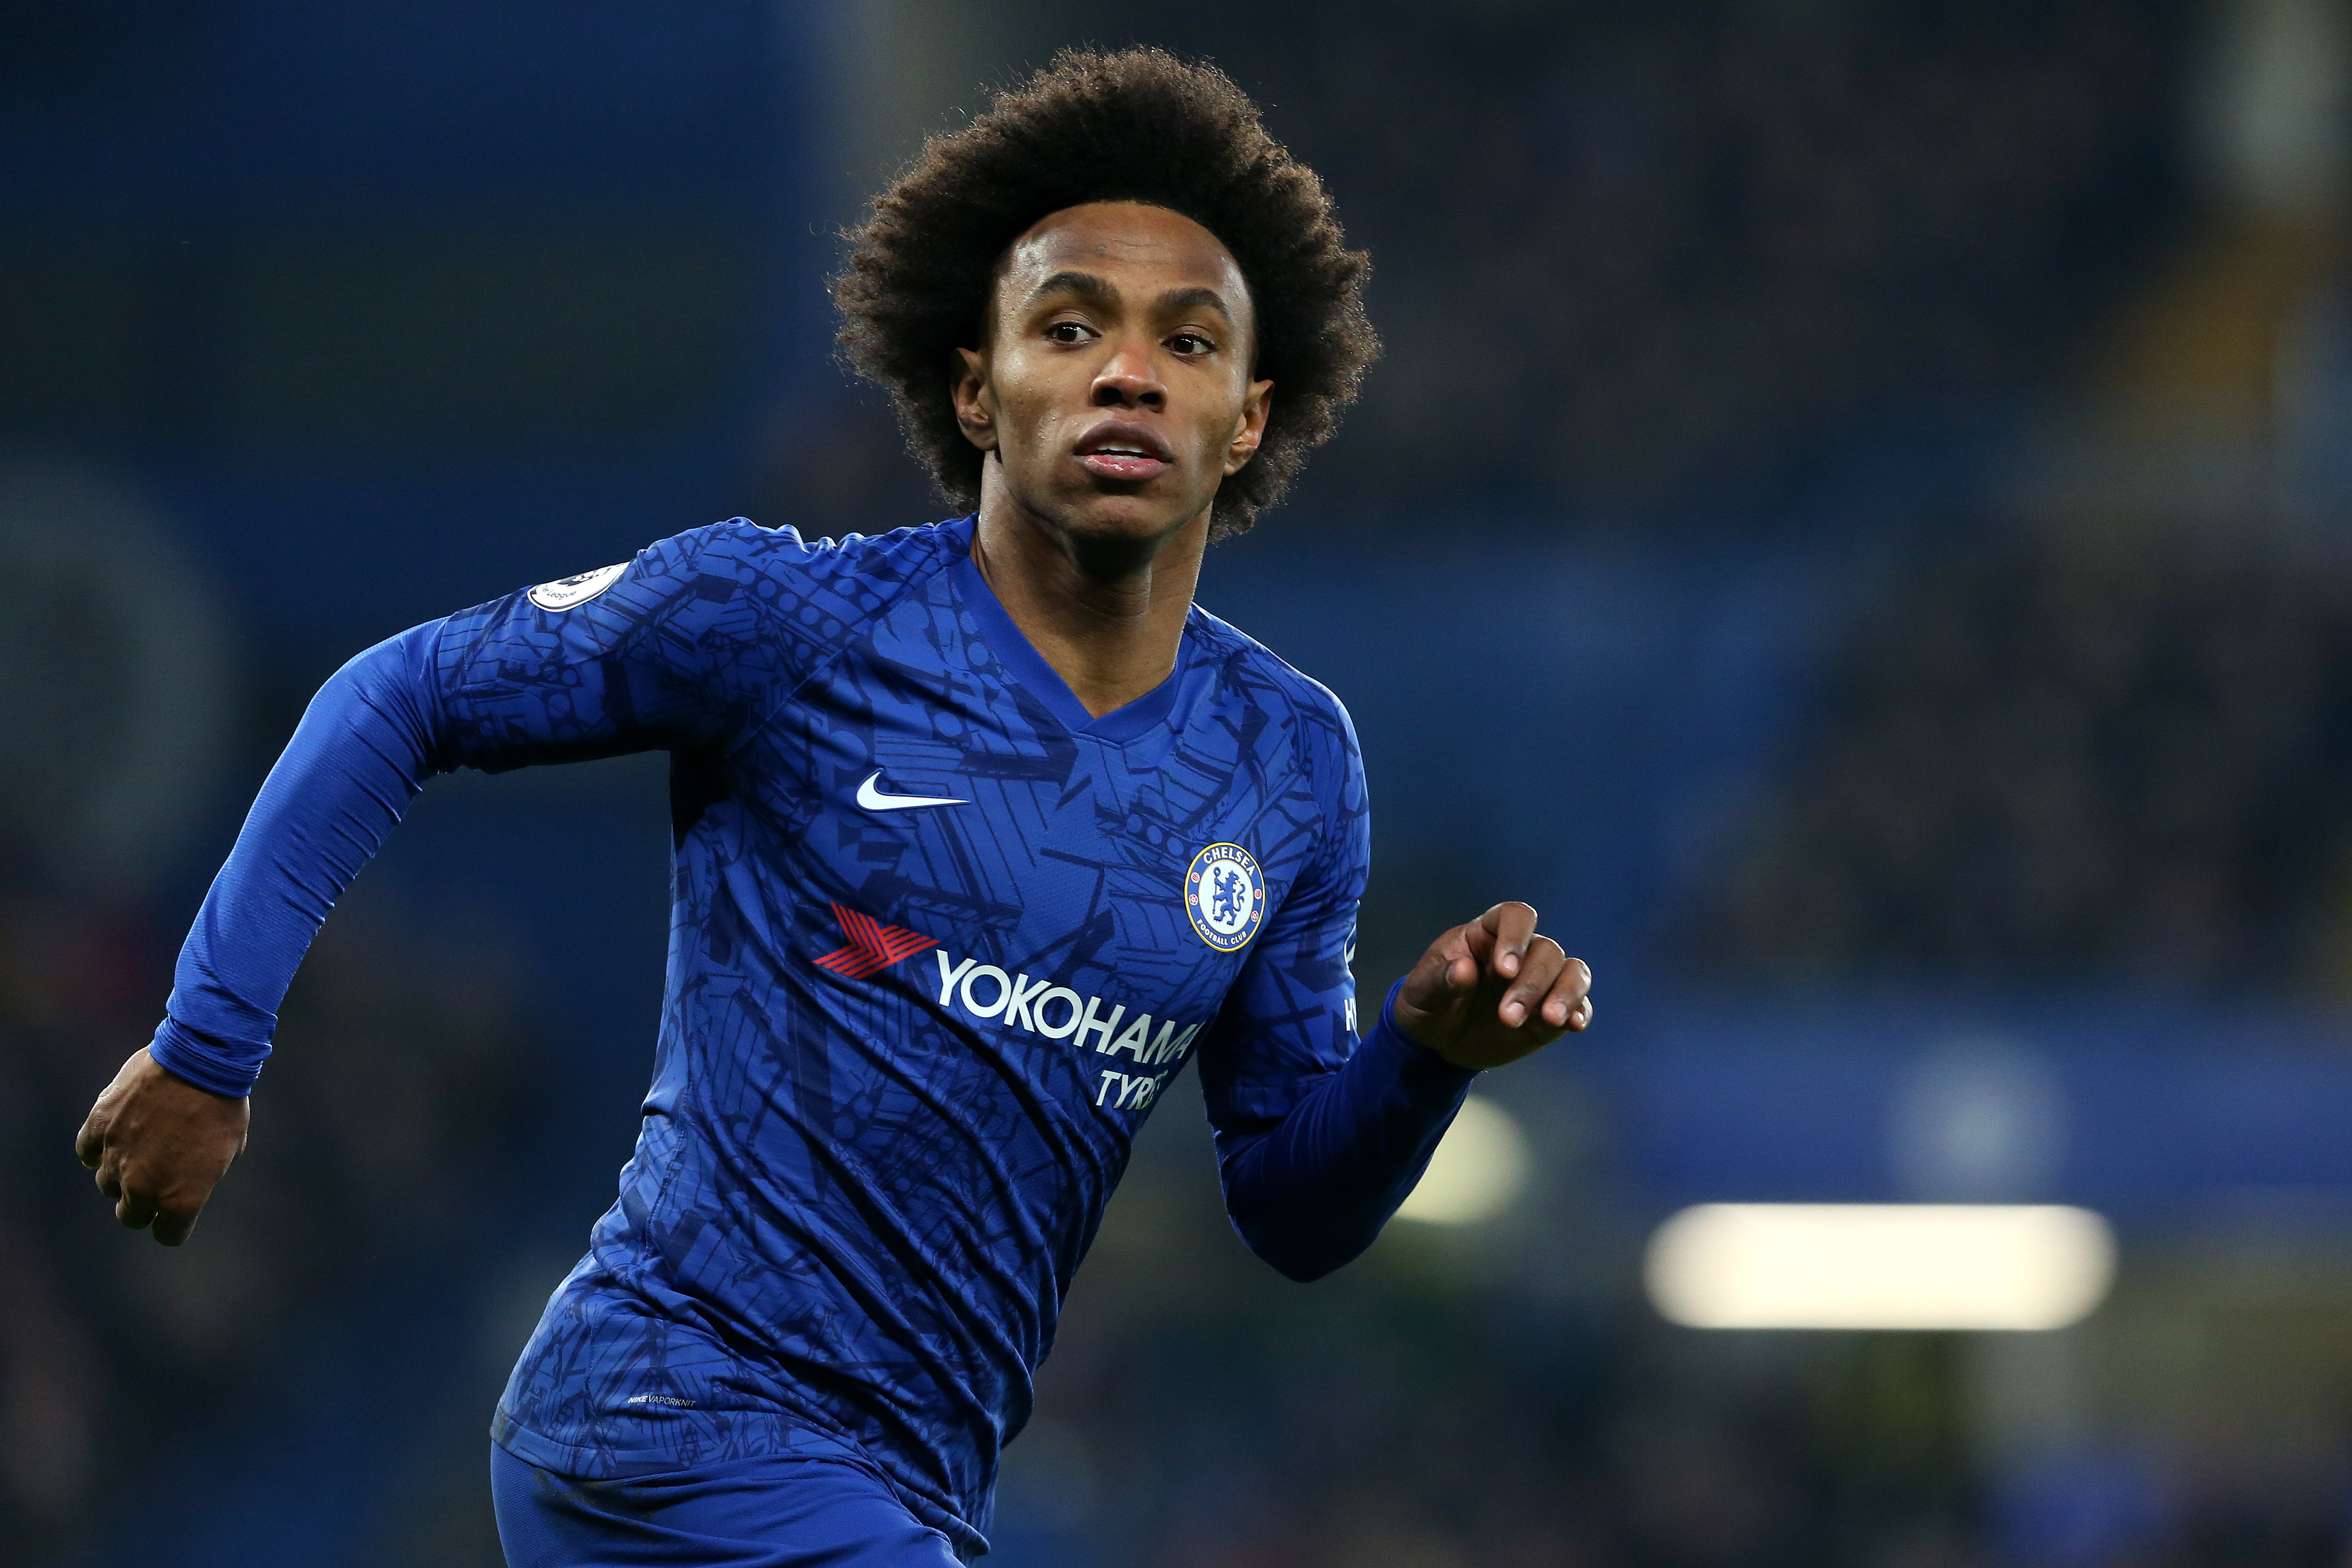 Willian to Arsenal: The pros and cons of signing Chelsea star